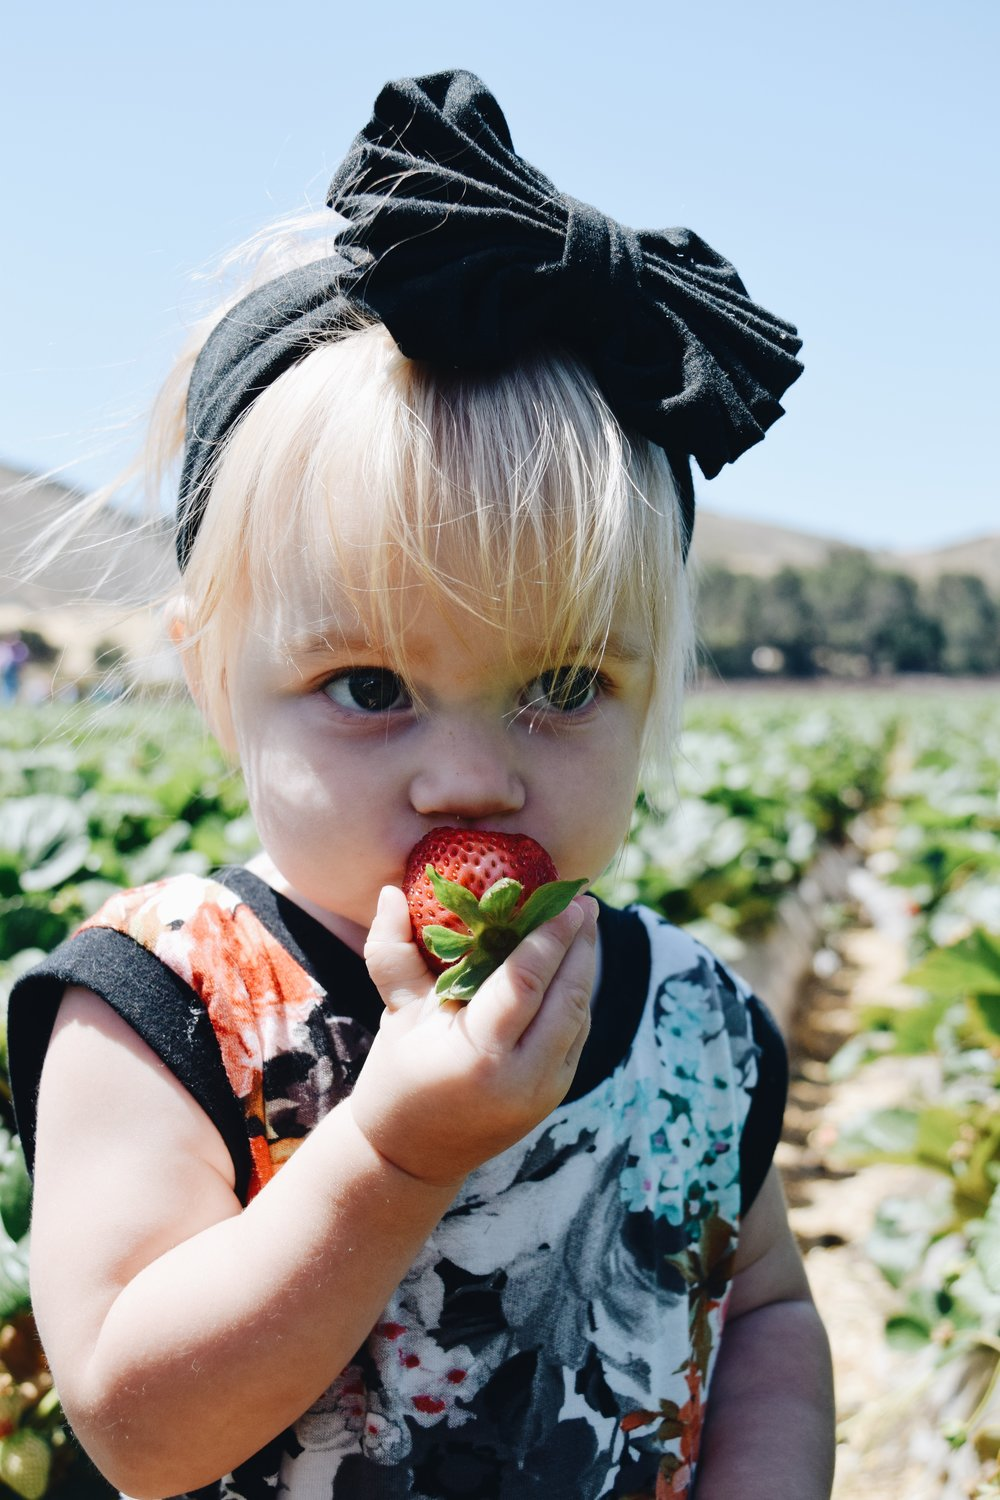 Strawberry Picking at Underwood Family Farms